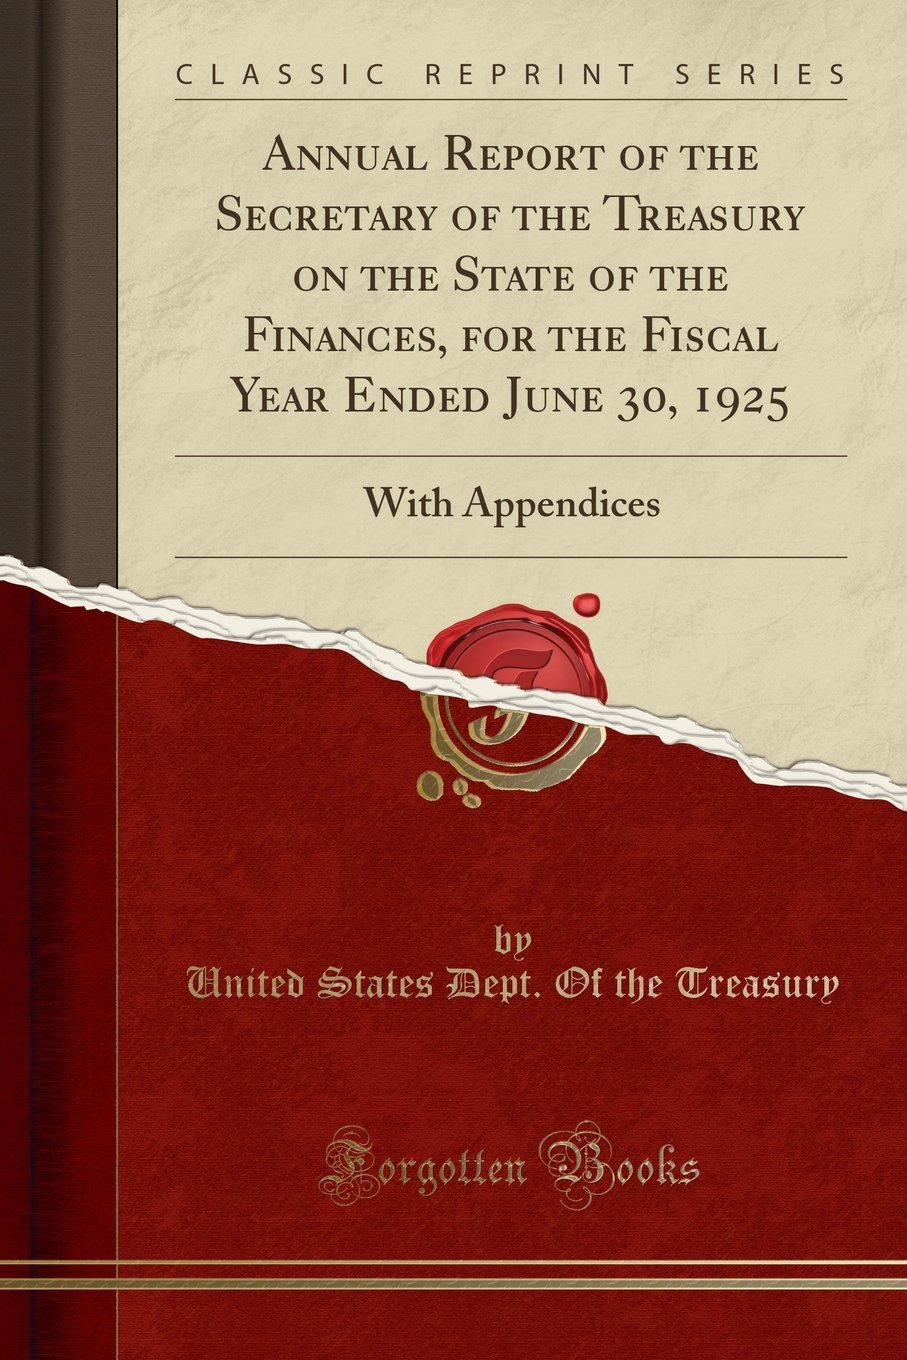 Read Online Annual Report of the Secretary of the Treasury on the State of the Finances, for the Fiscal Year Ended June 30, 1925: With Appendices (Classic Reprint) ebook